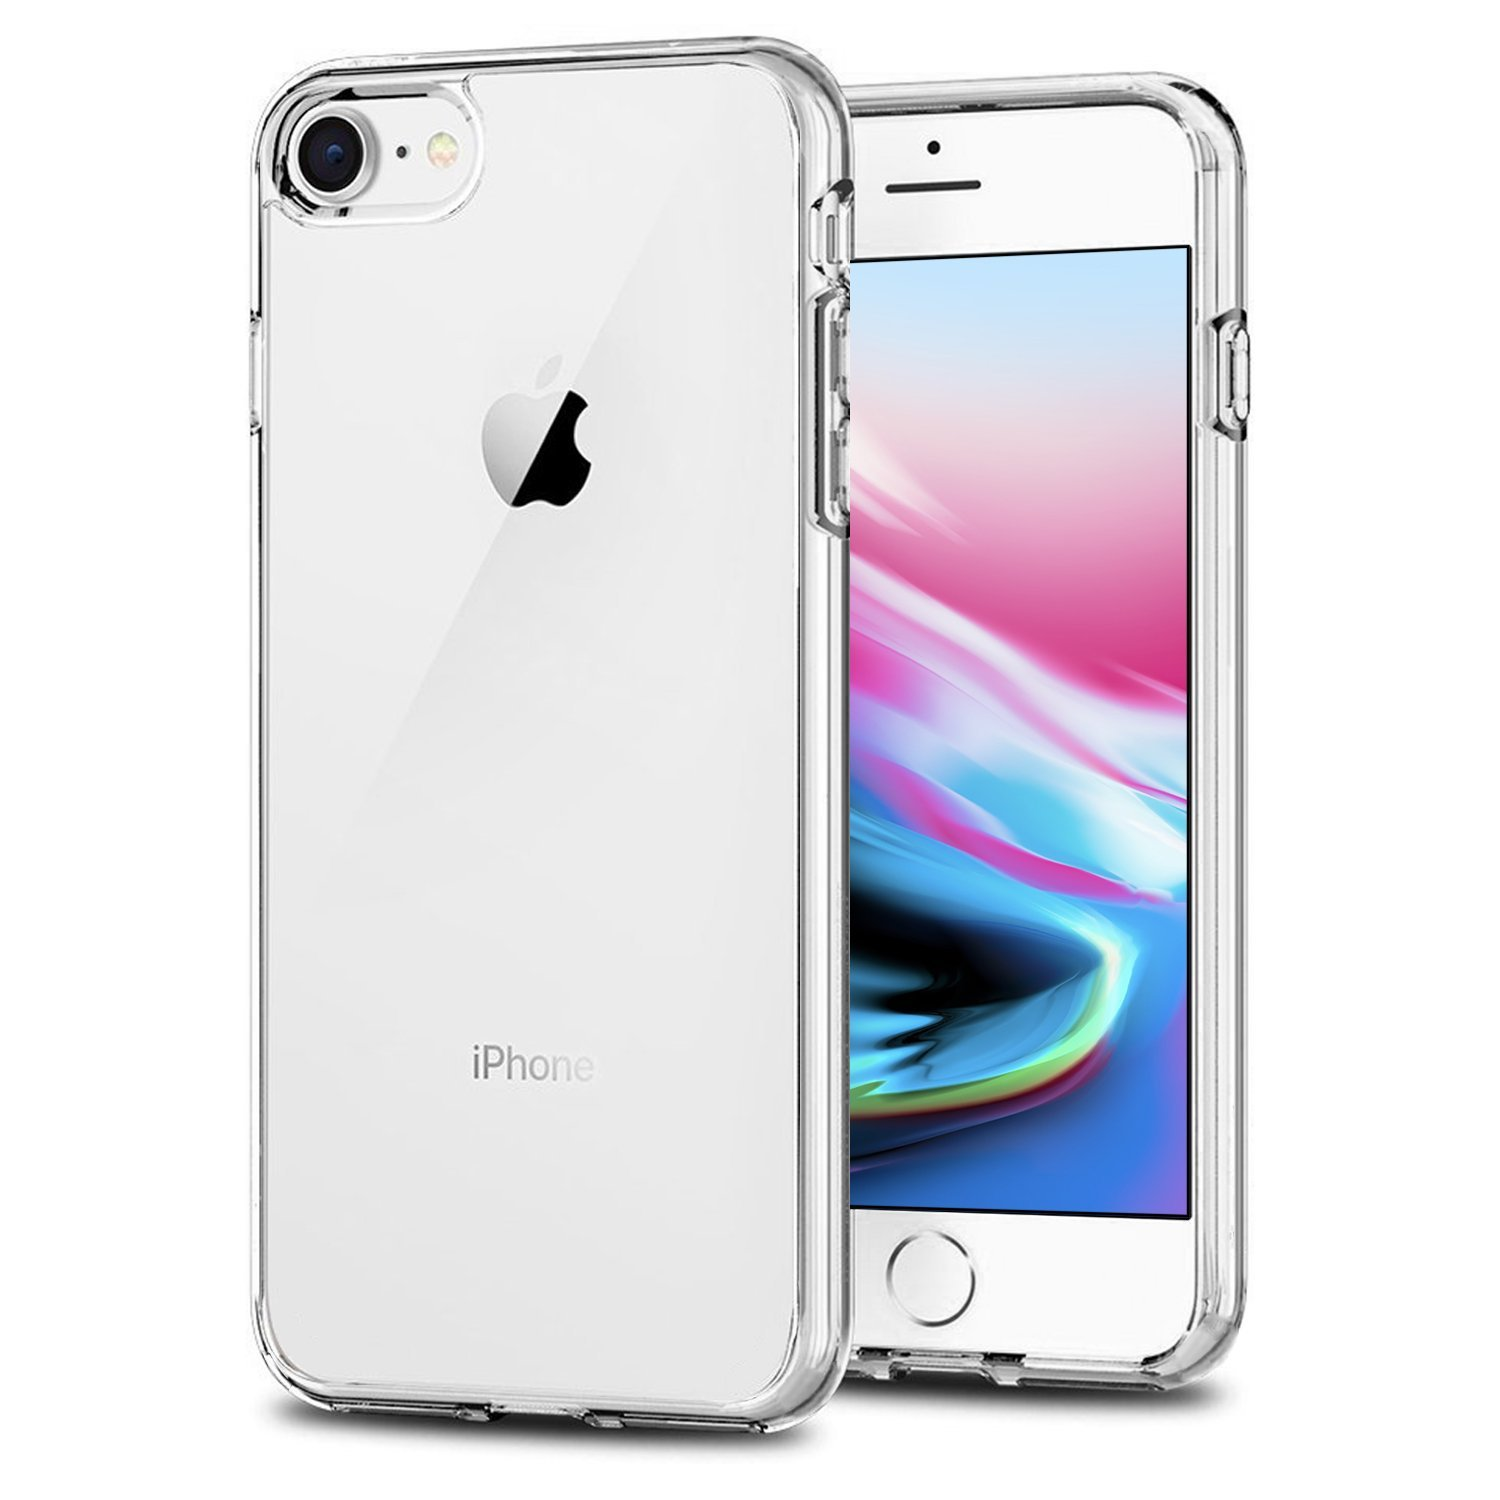 TENOC Case Compatible for Apple iPhone 7 and iPhone 8 4.7 Inch, Crystal Clear Soft TPU Cover Full Protective Bumper by TENOC (Image #1)